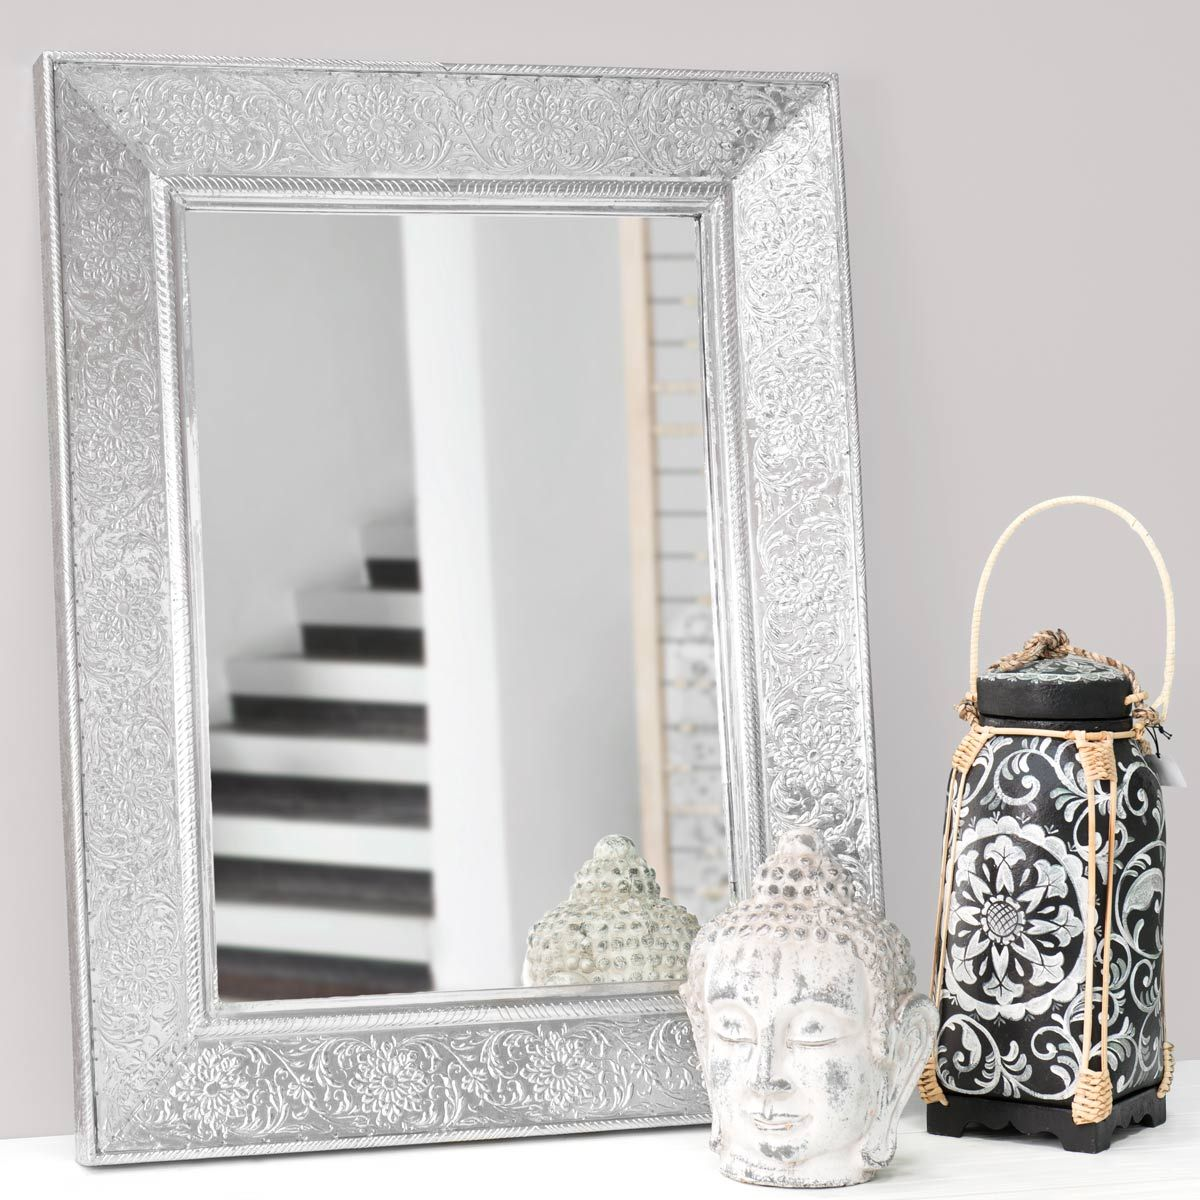 Bysance Mirror Maisons Du Monde Through The Looking Glass